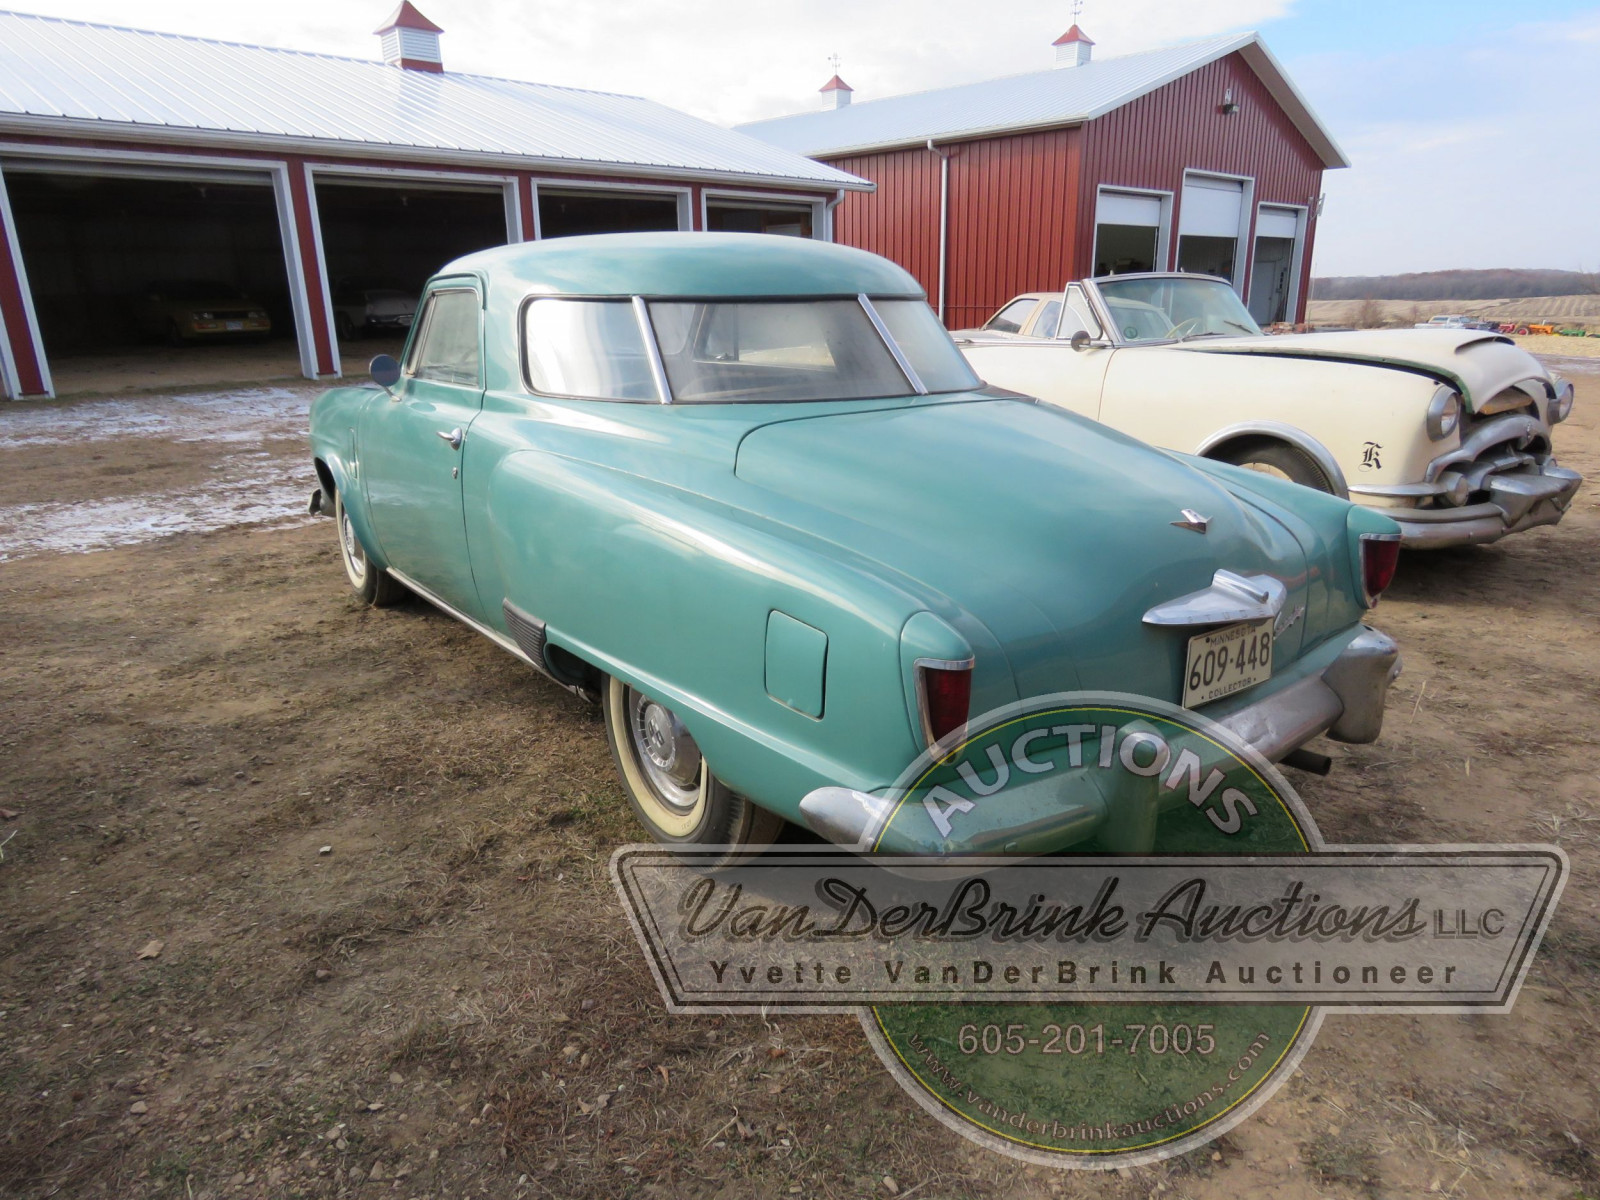 1952 Studebaker Commander Starlight Coupe - Image 4